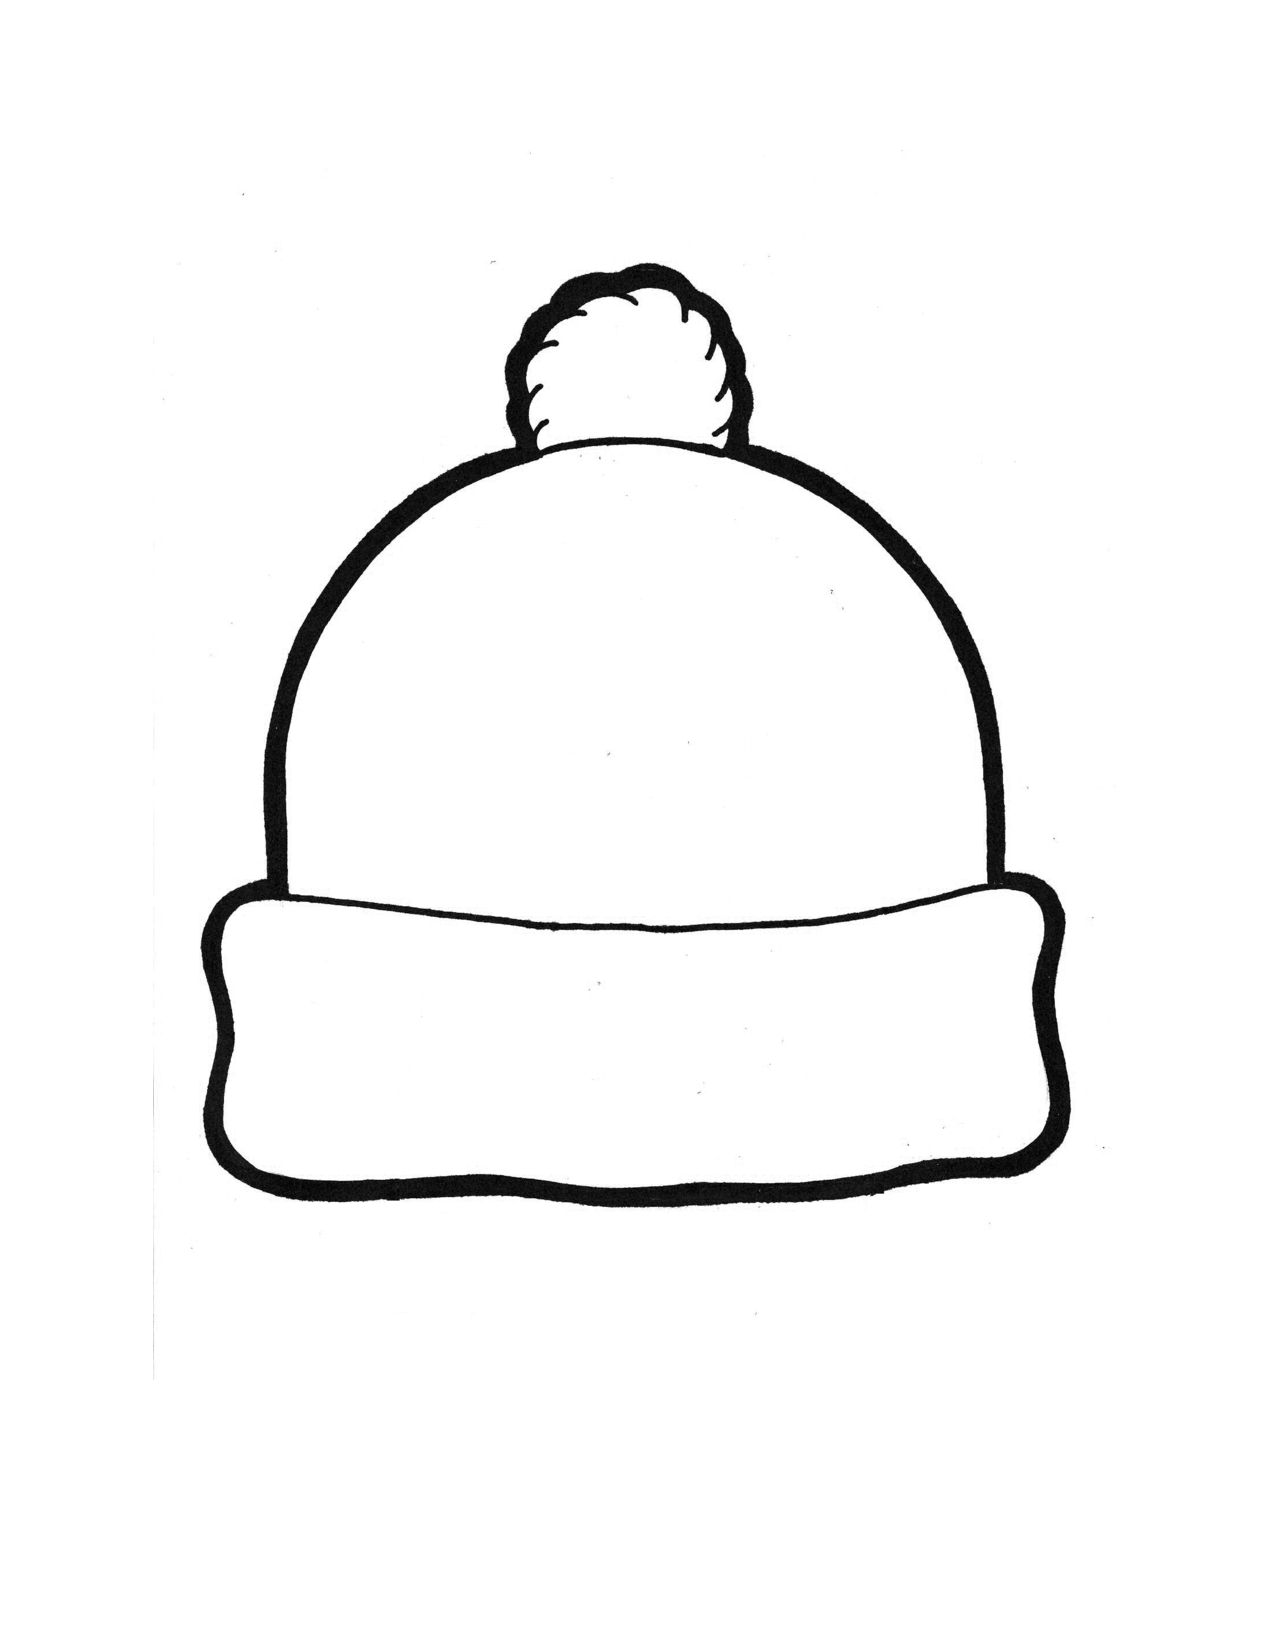 winter hat coloring page winter hat coloring page fresh winter hat picture coloring coloring hat page winter